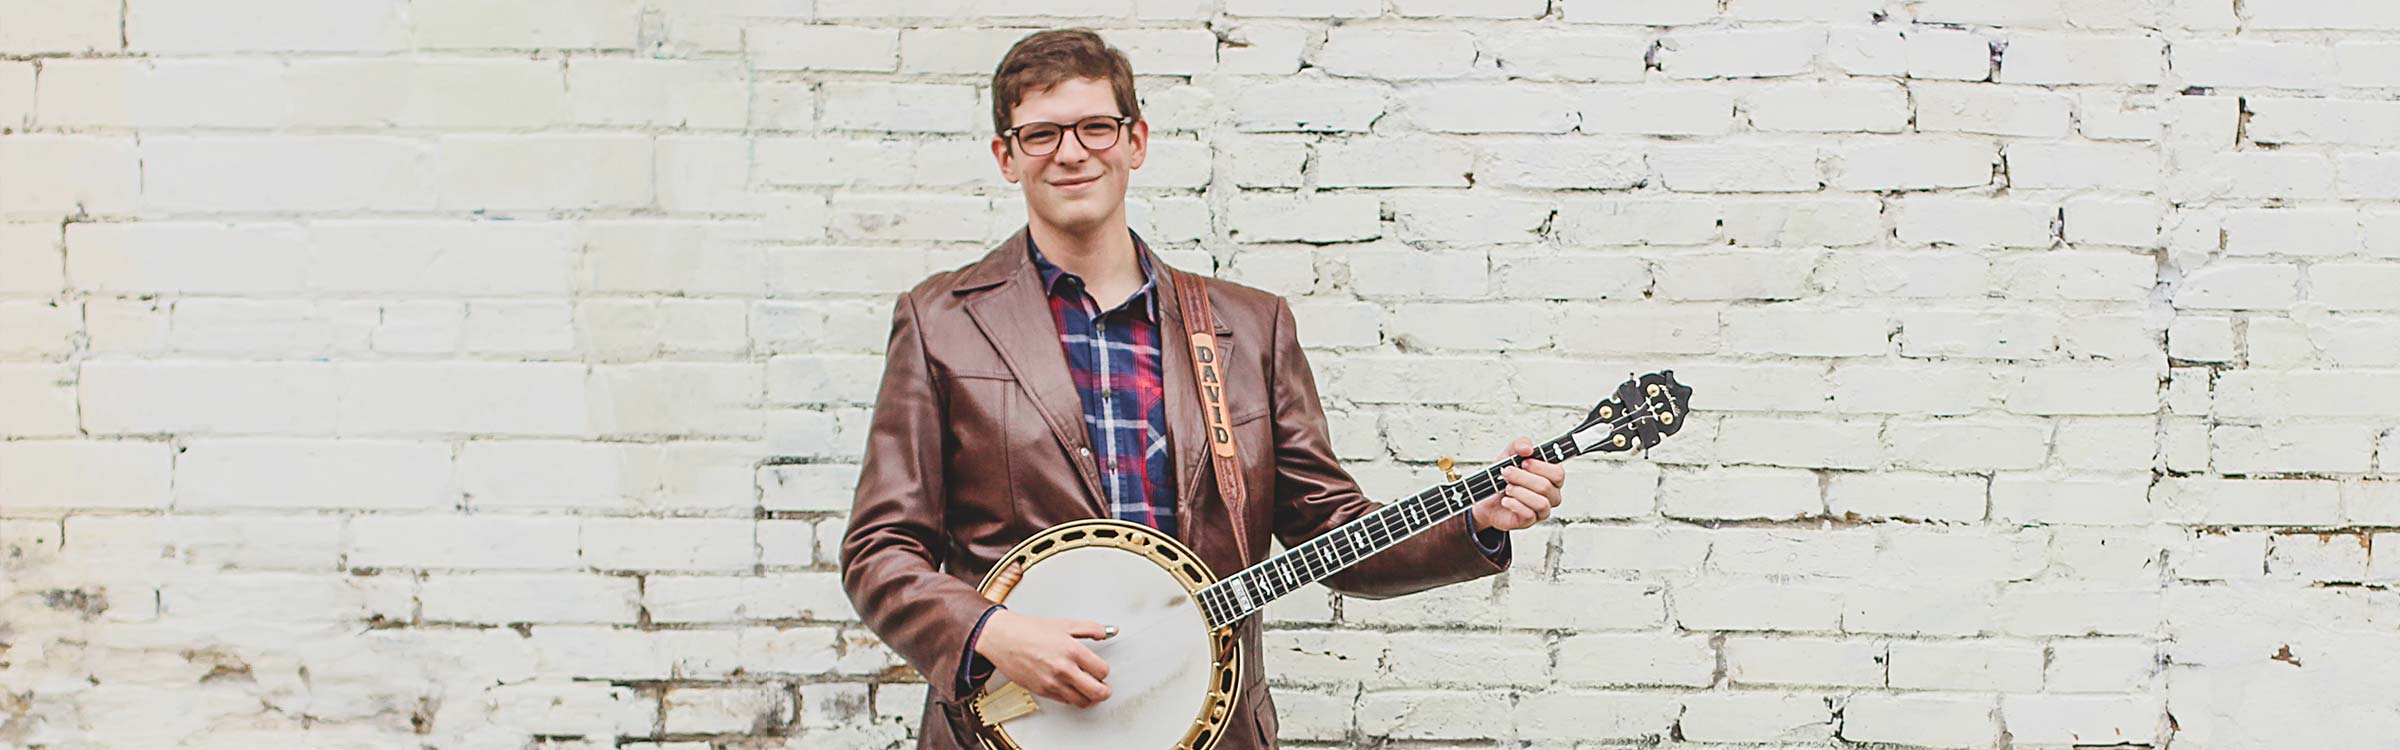 David Robinson with a banjo